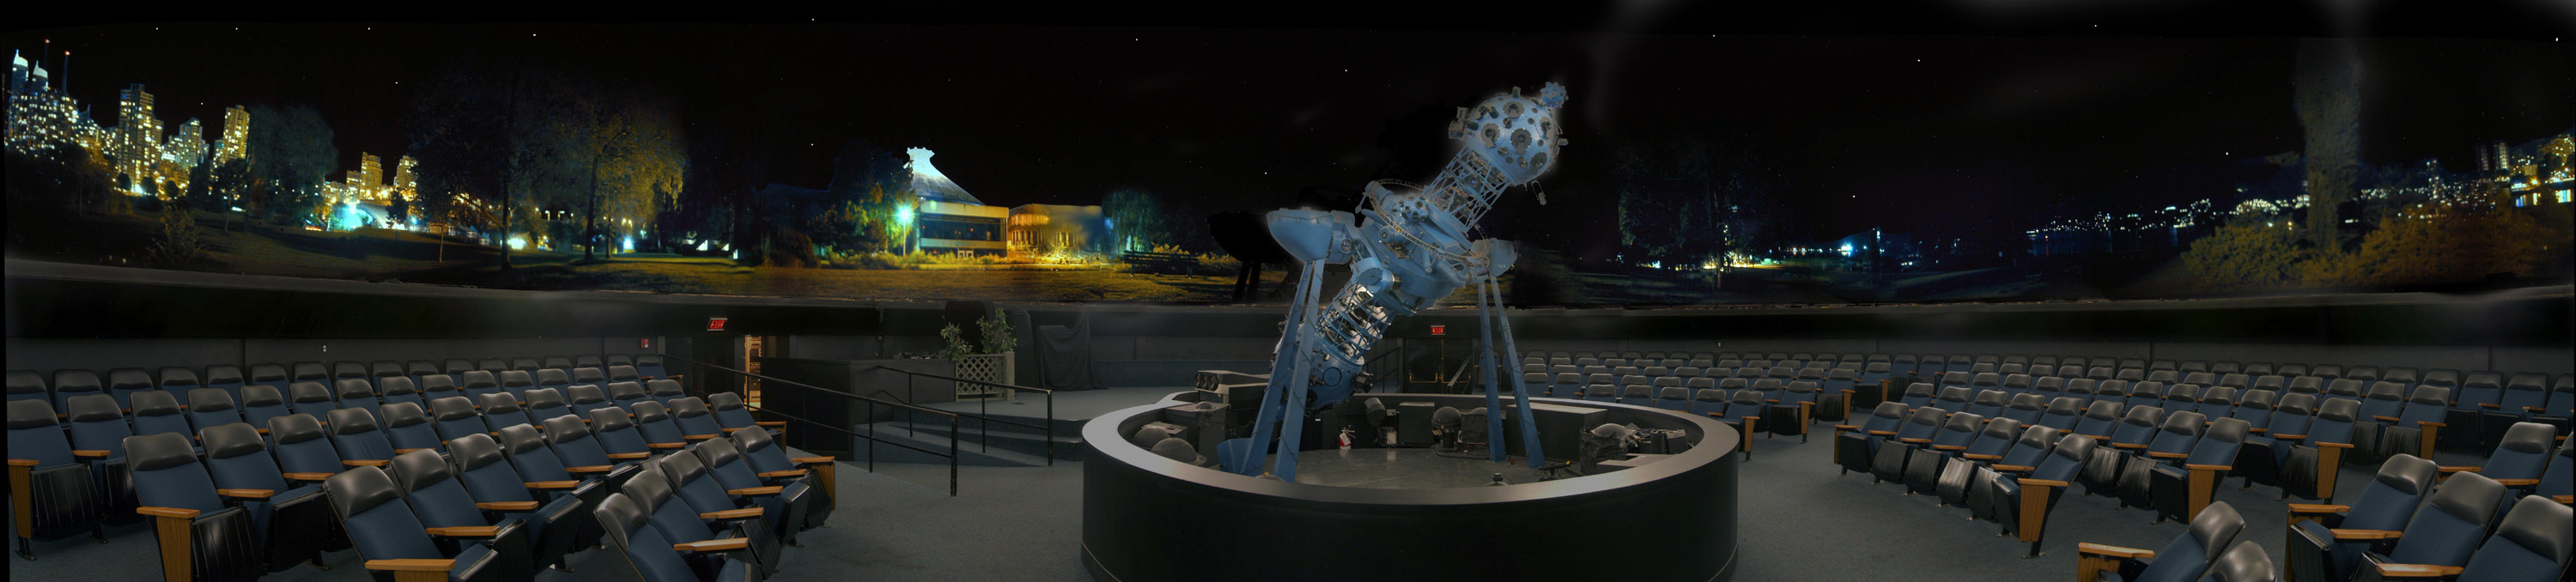 ips_spacecentre_planetarium